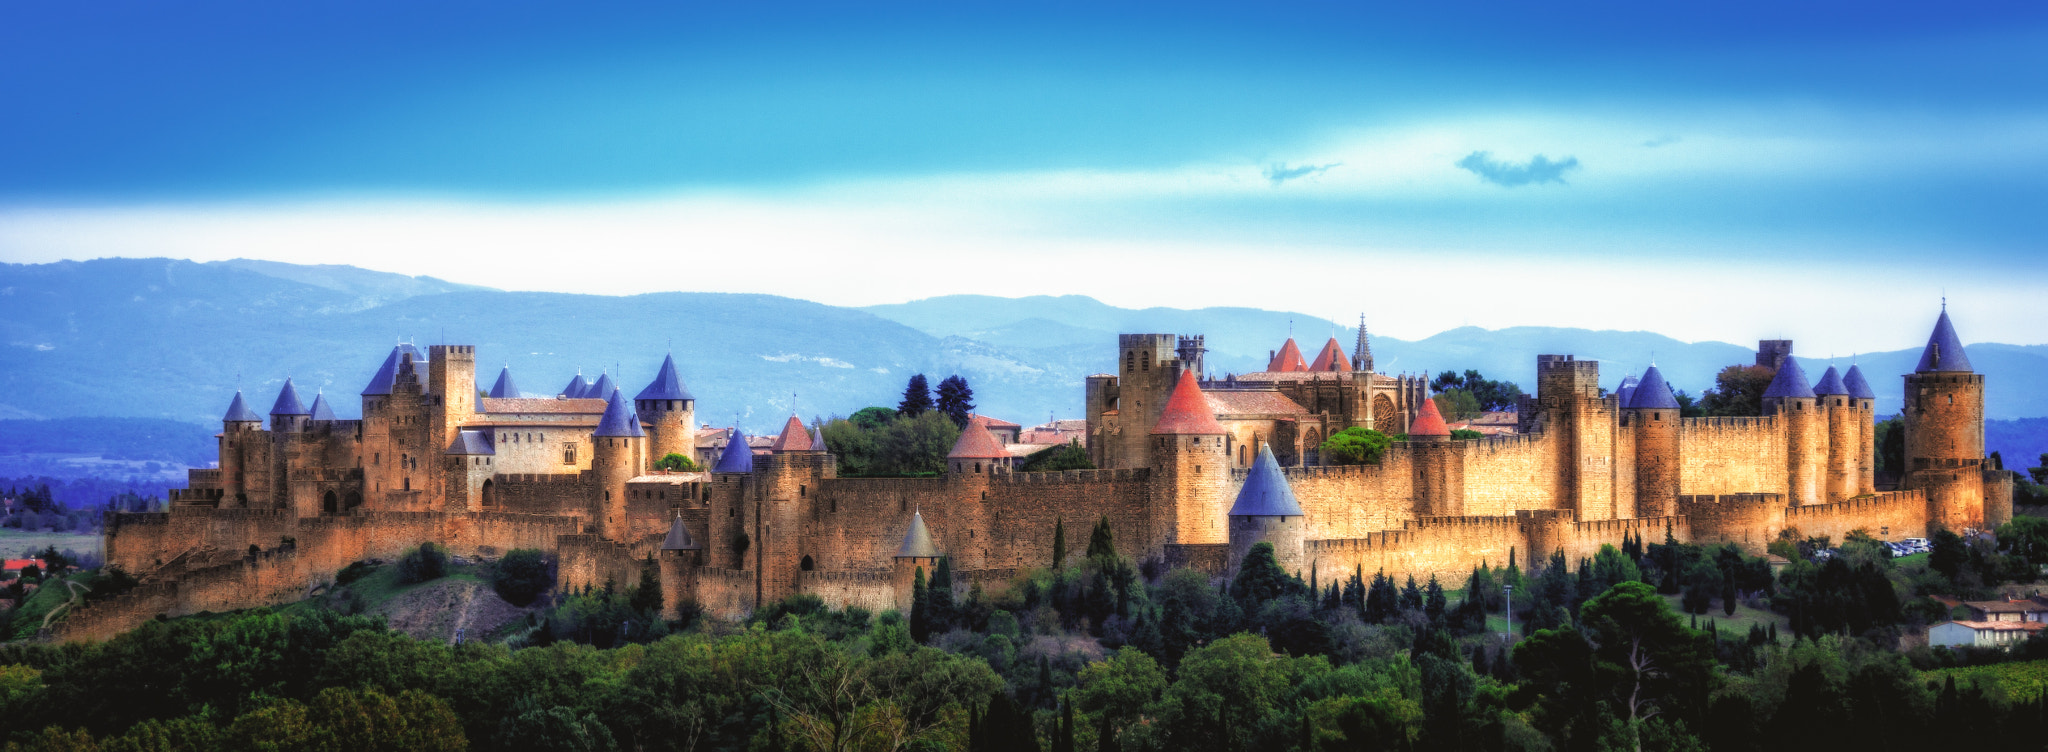 Photograph Castle Carcassone - France by franck bachere on 500px